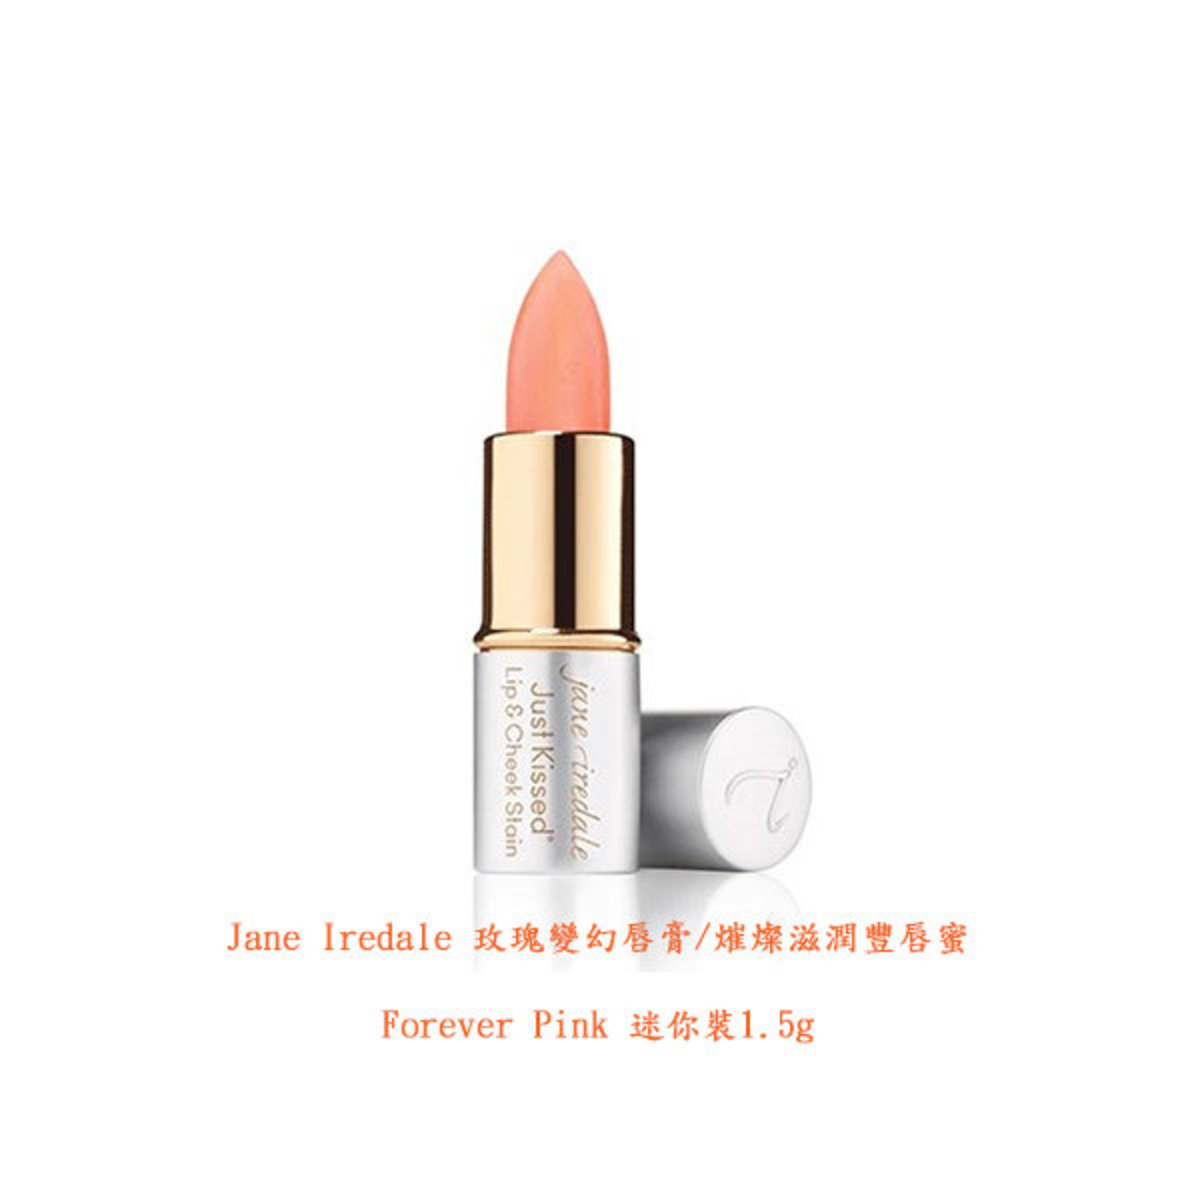 Jane Iredale 玫瑰變幻唇膏/熣燦滋潤豐唇蜜 - Forever Pink 迷你裝1.5g